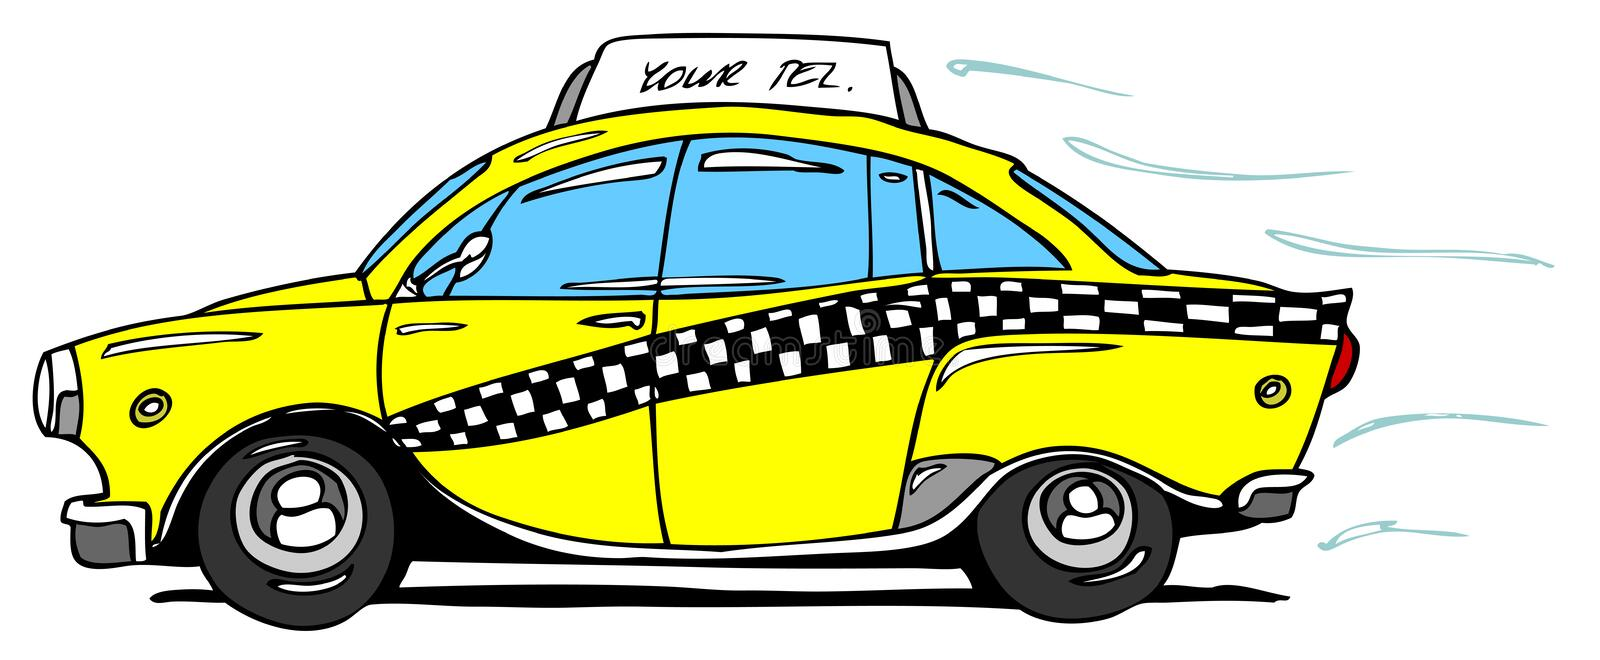 Taxi. Hand drawn yellow taxi cab stock illustration